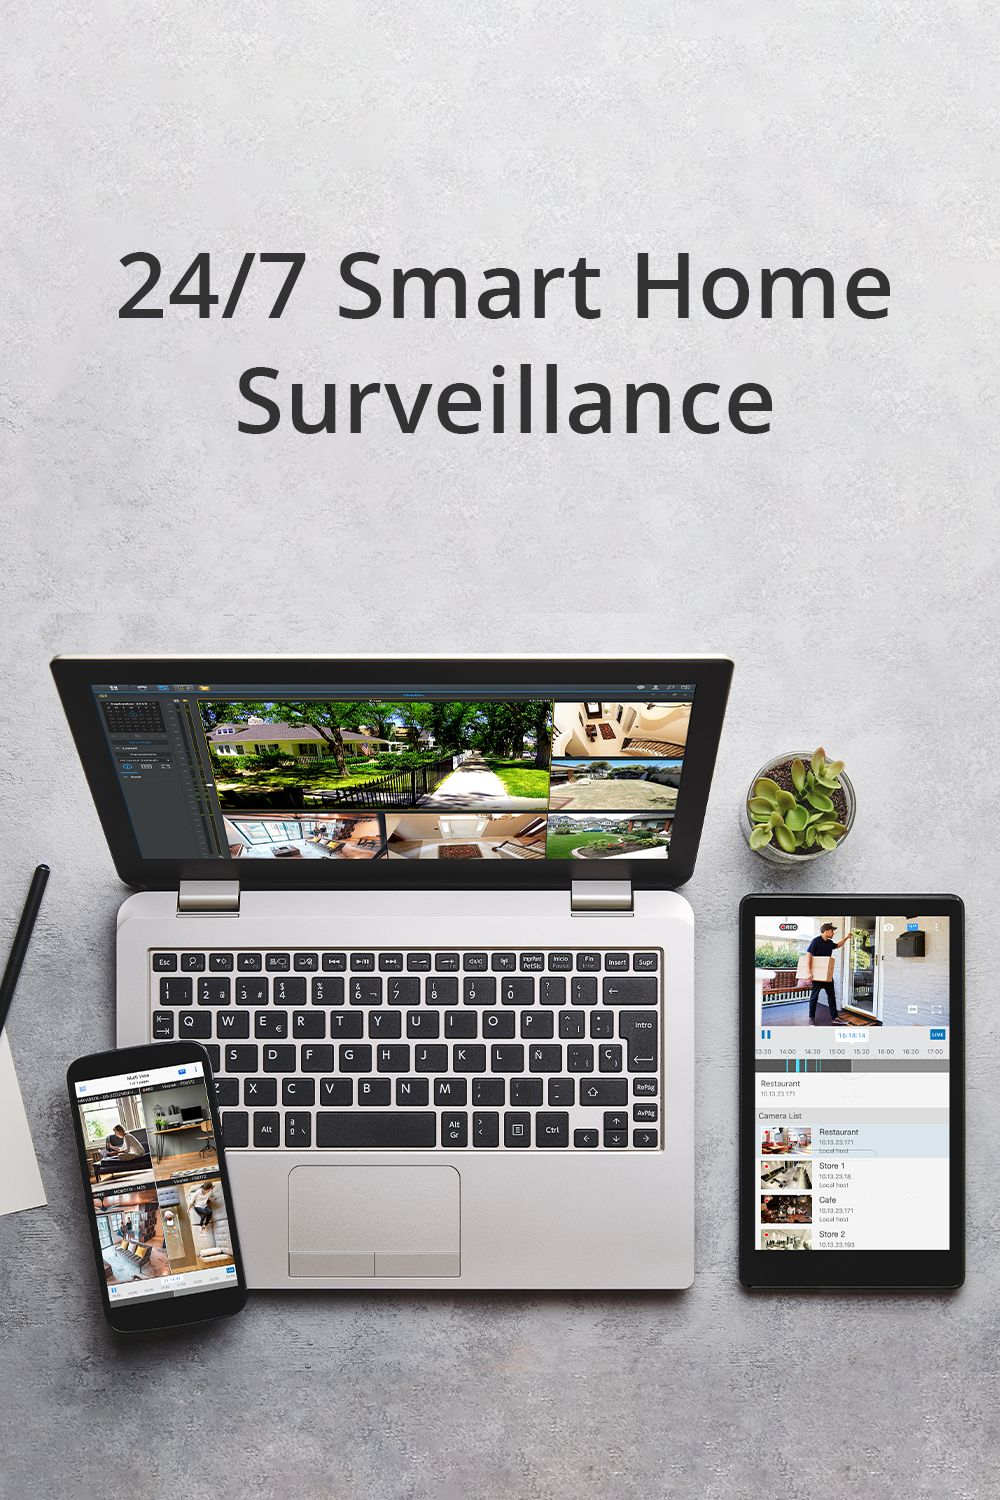 24/7 Smart Home Surveillance